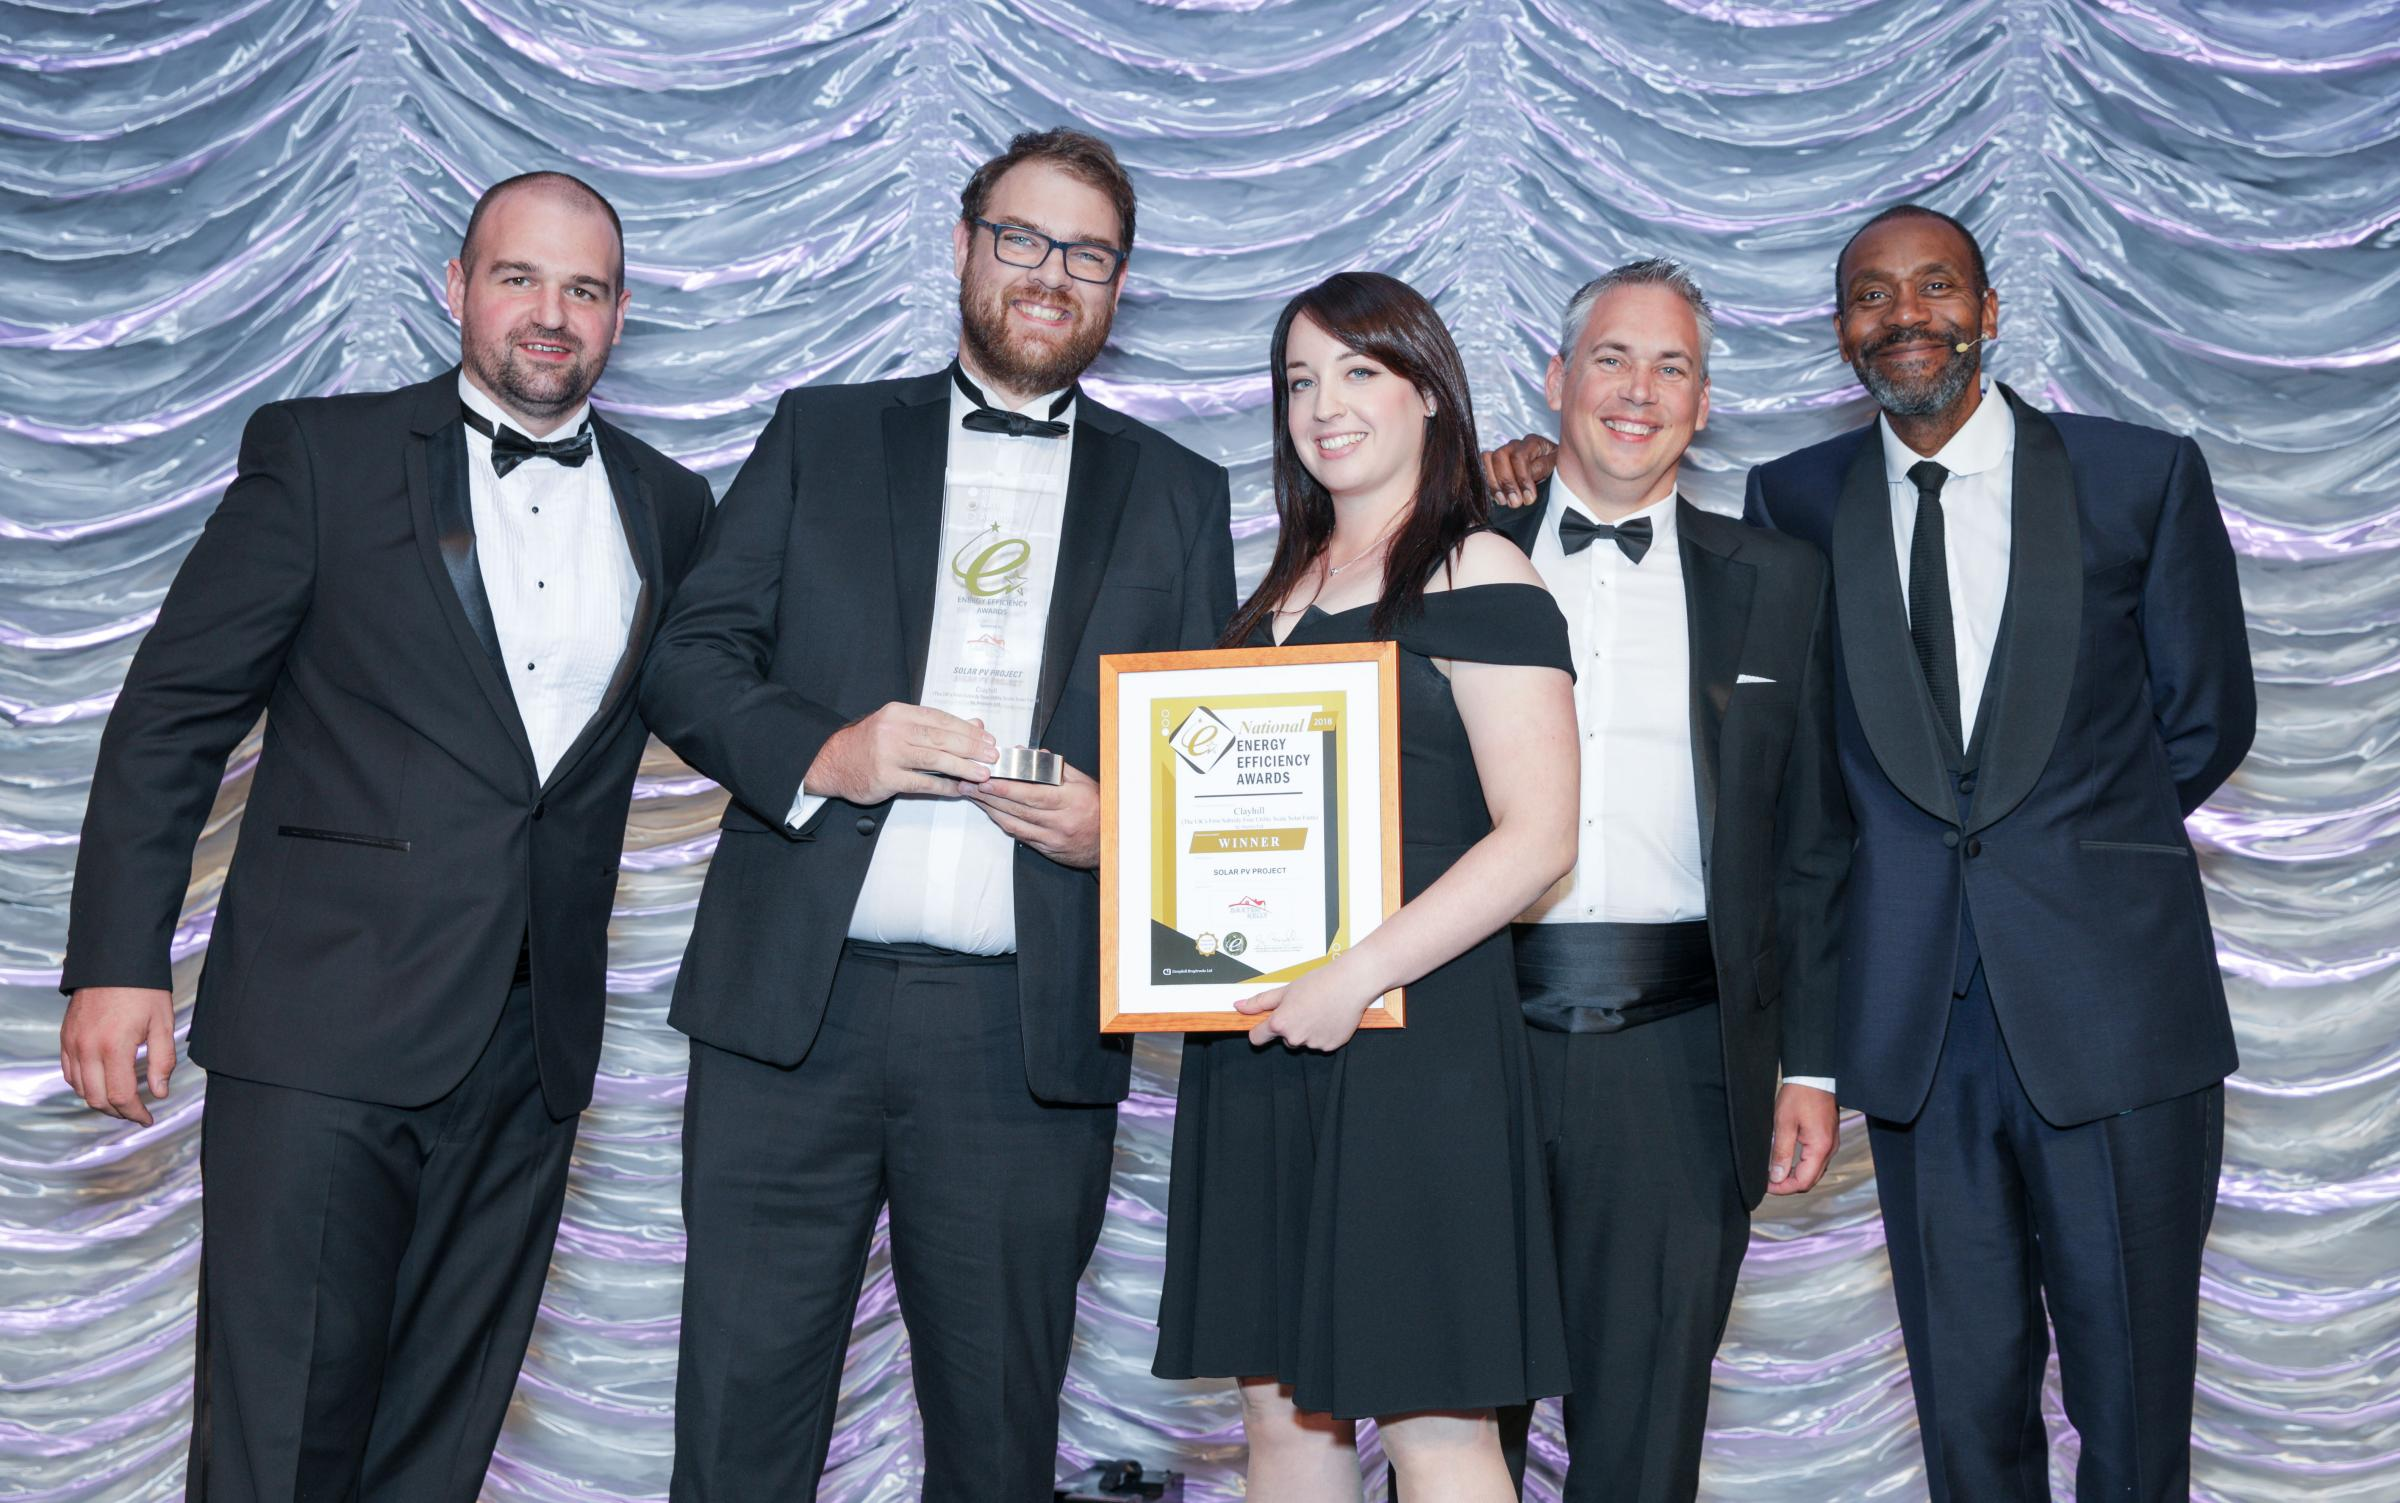 The Anesco team receiving their award from TV's Sir Lenny Henry